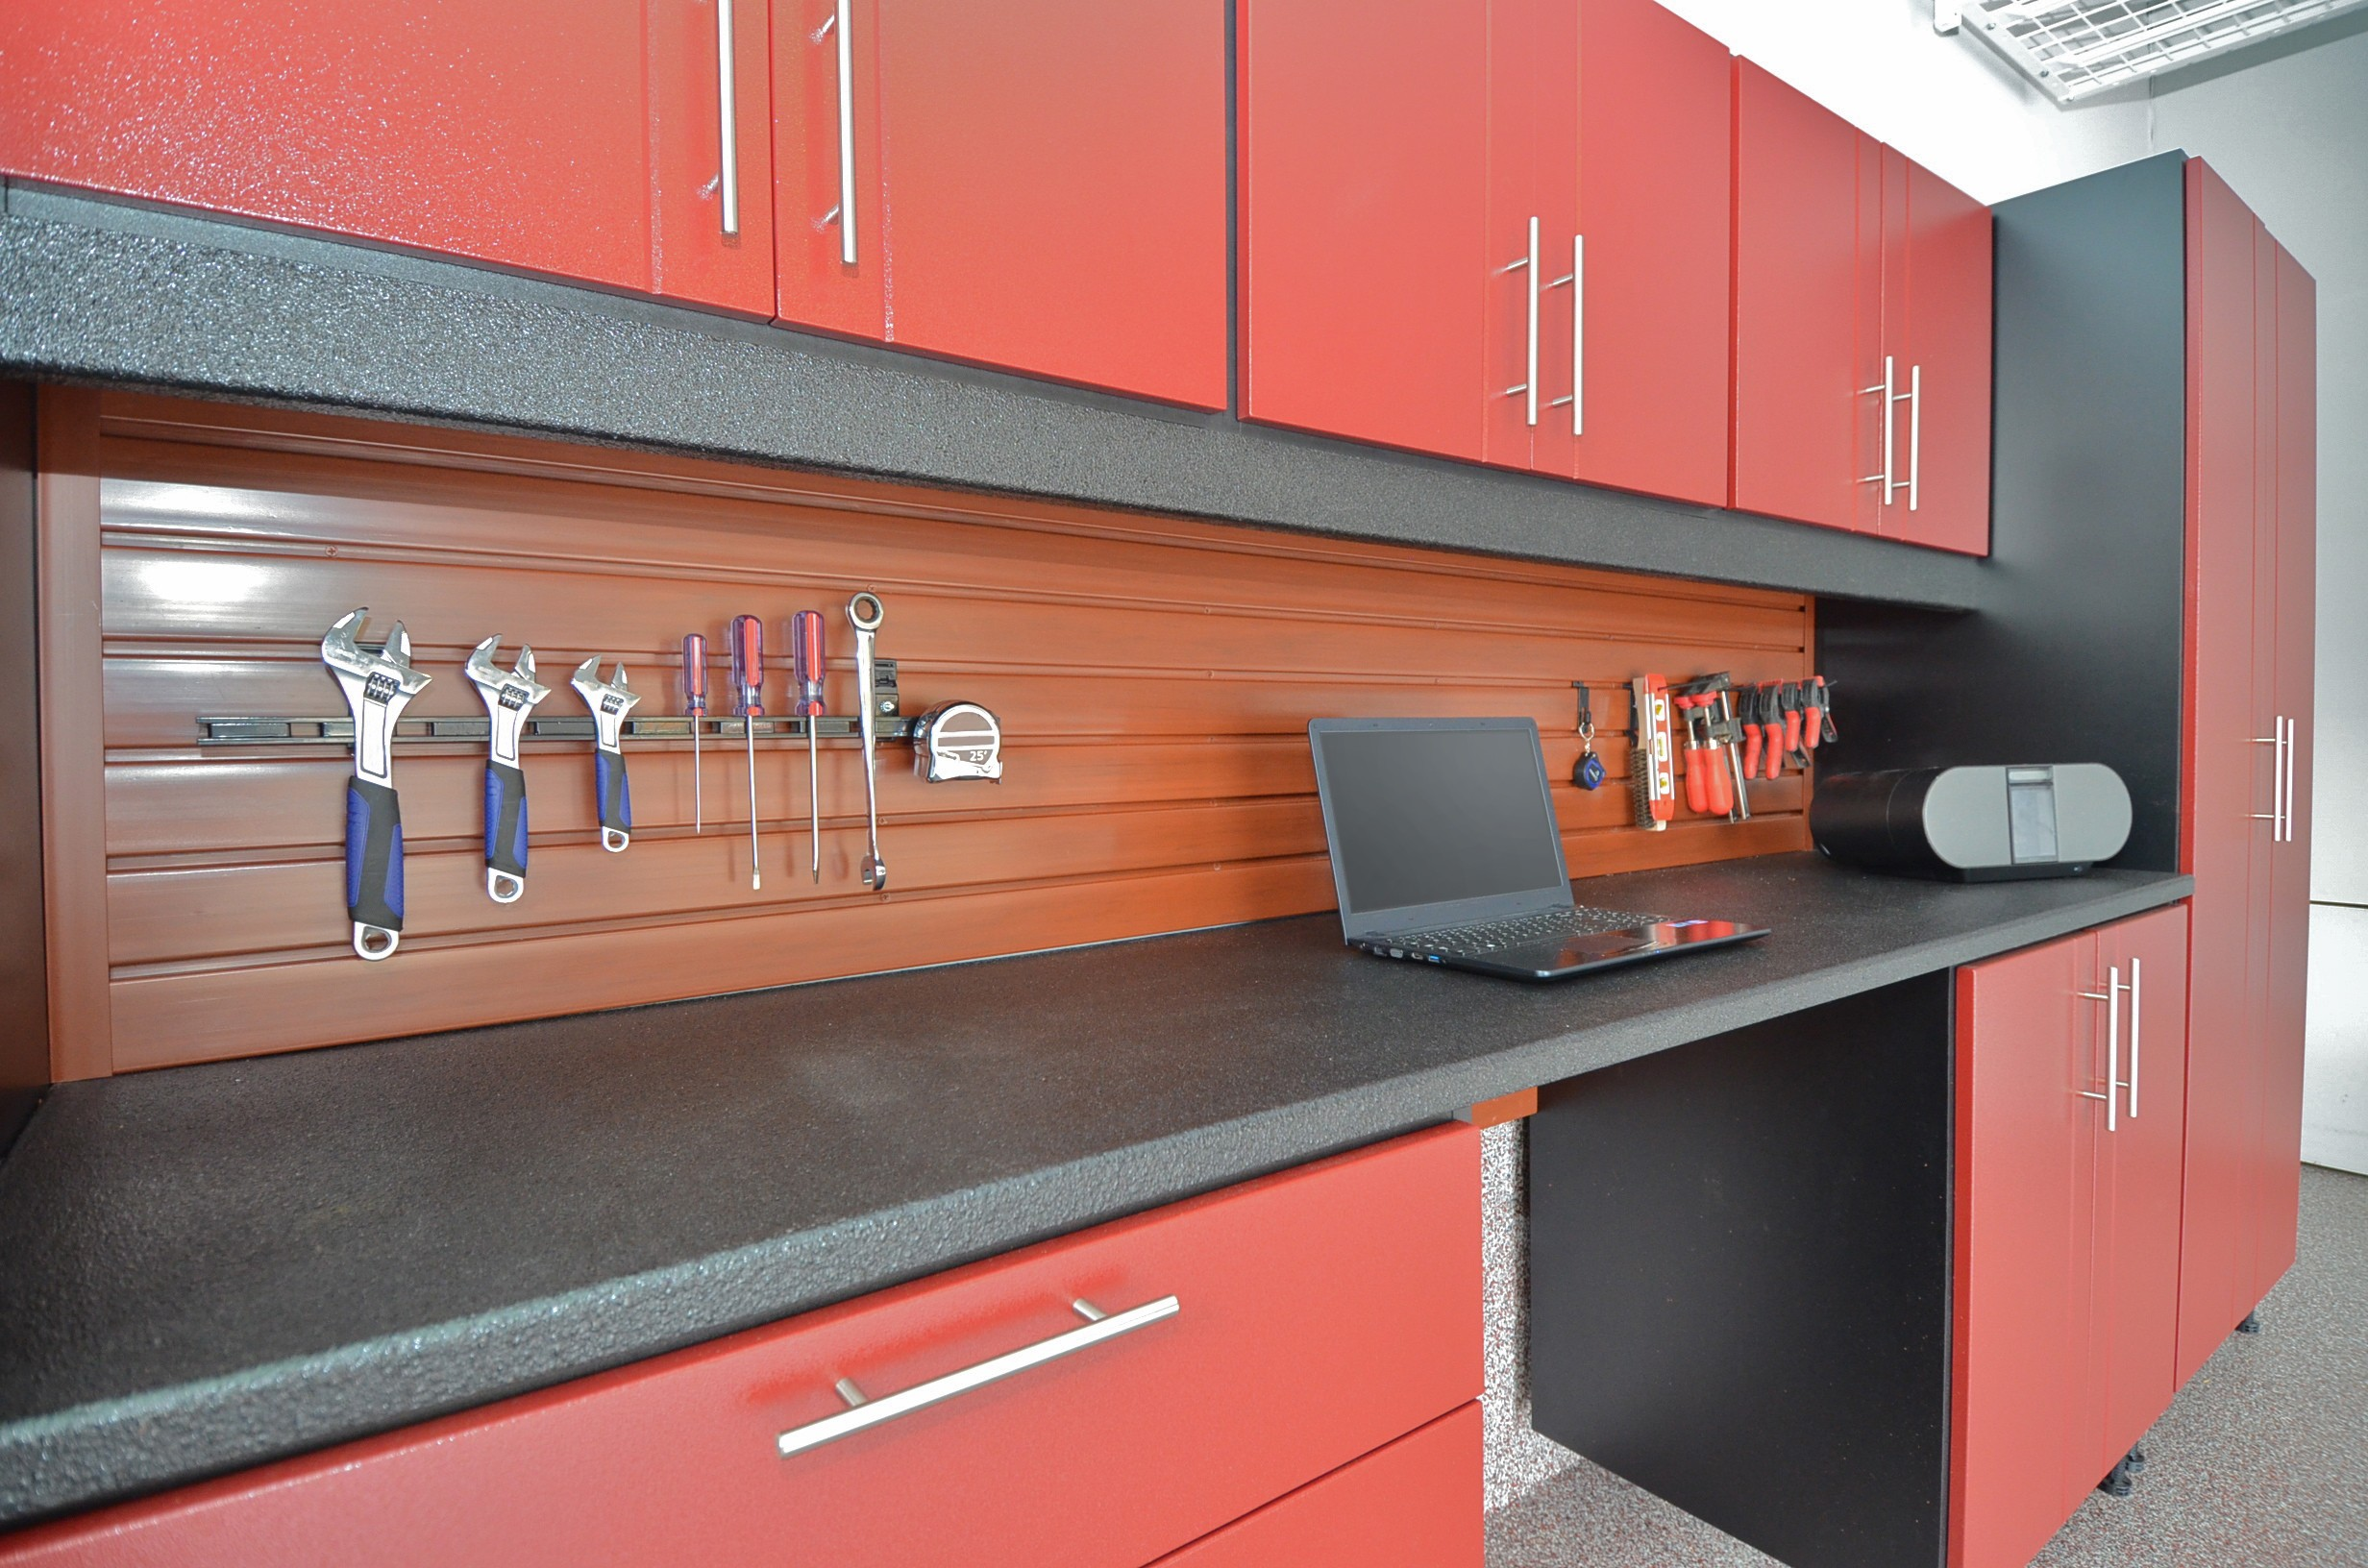 SlatWall Panels & SlatWall Accessories Above A WorkSpace Garage Cabinets Workbench Area